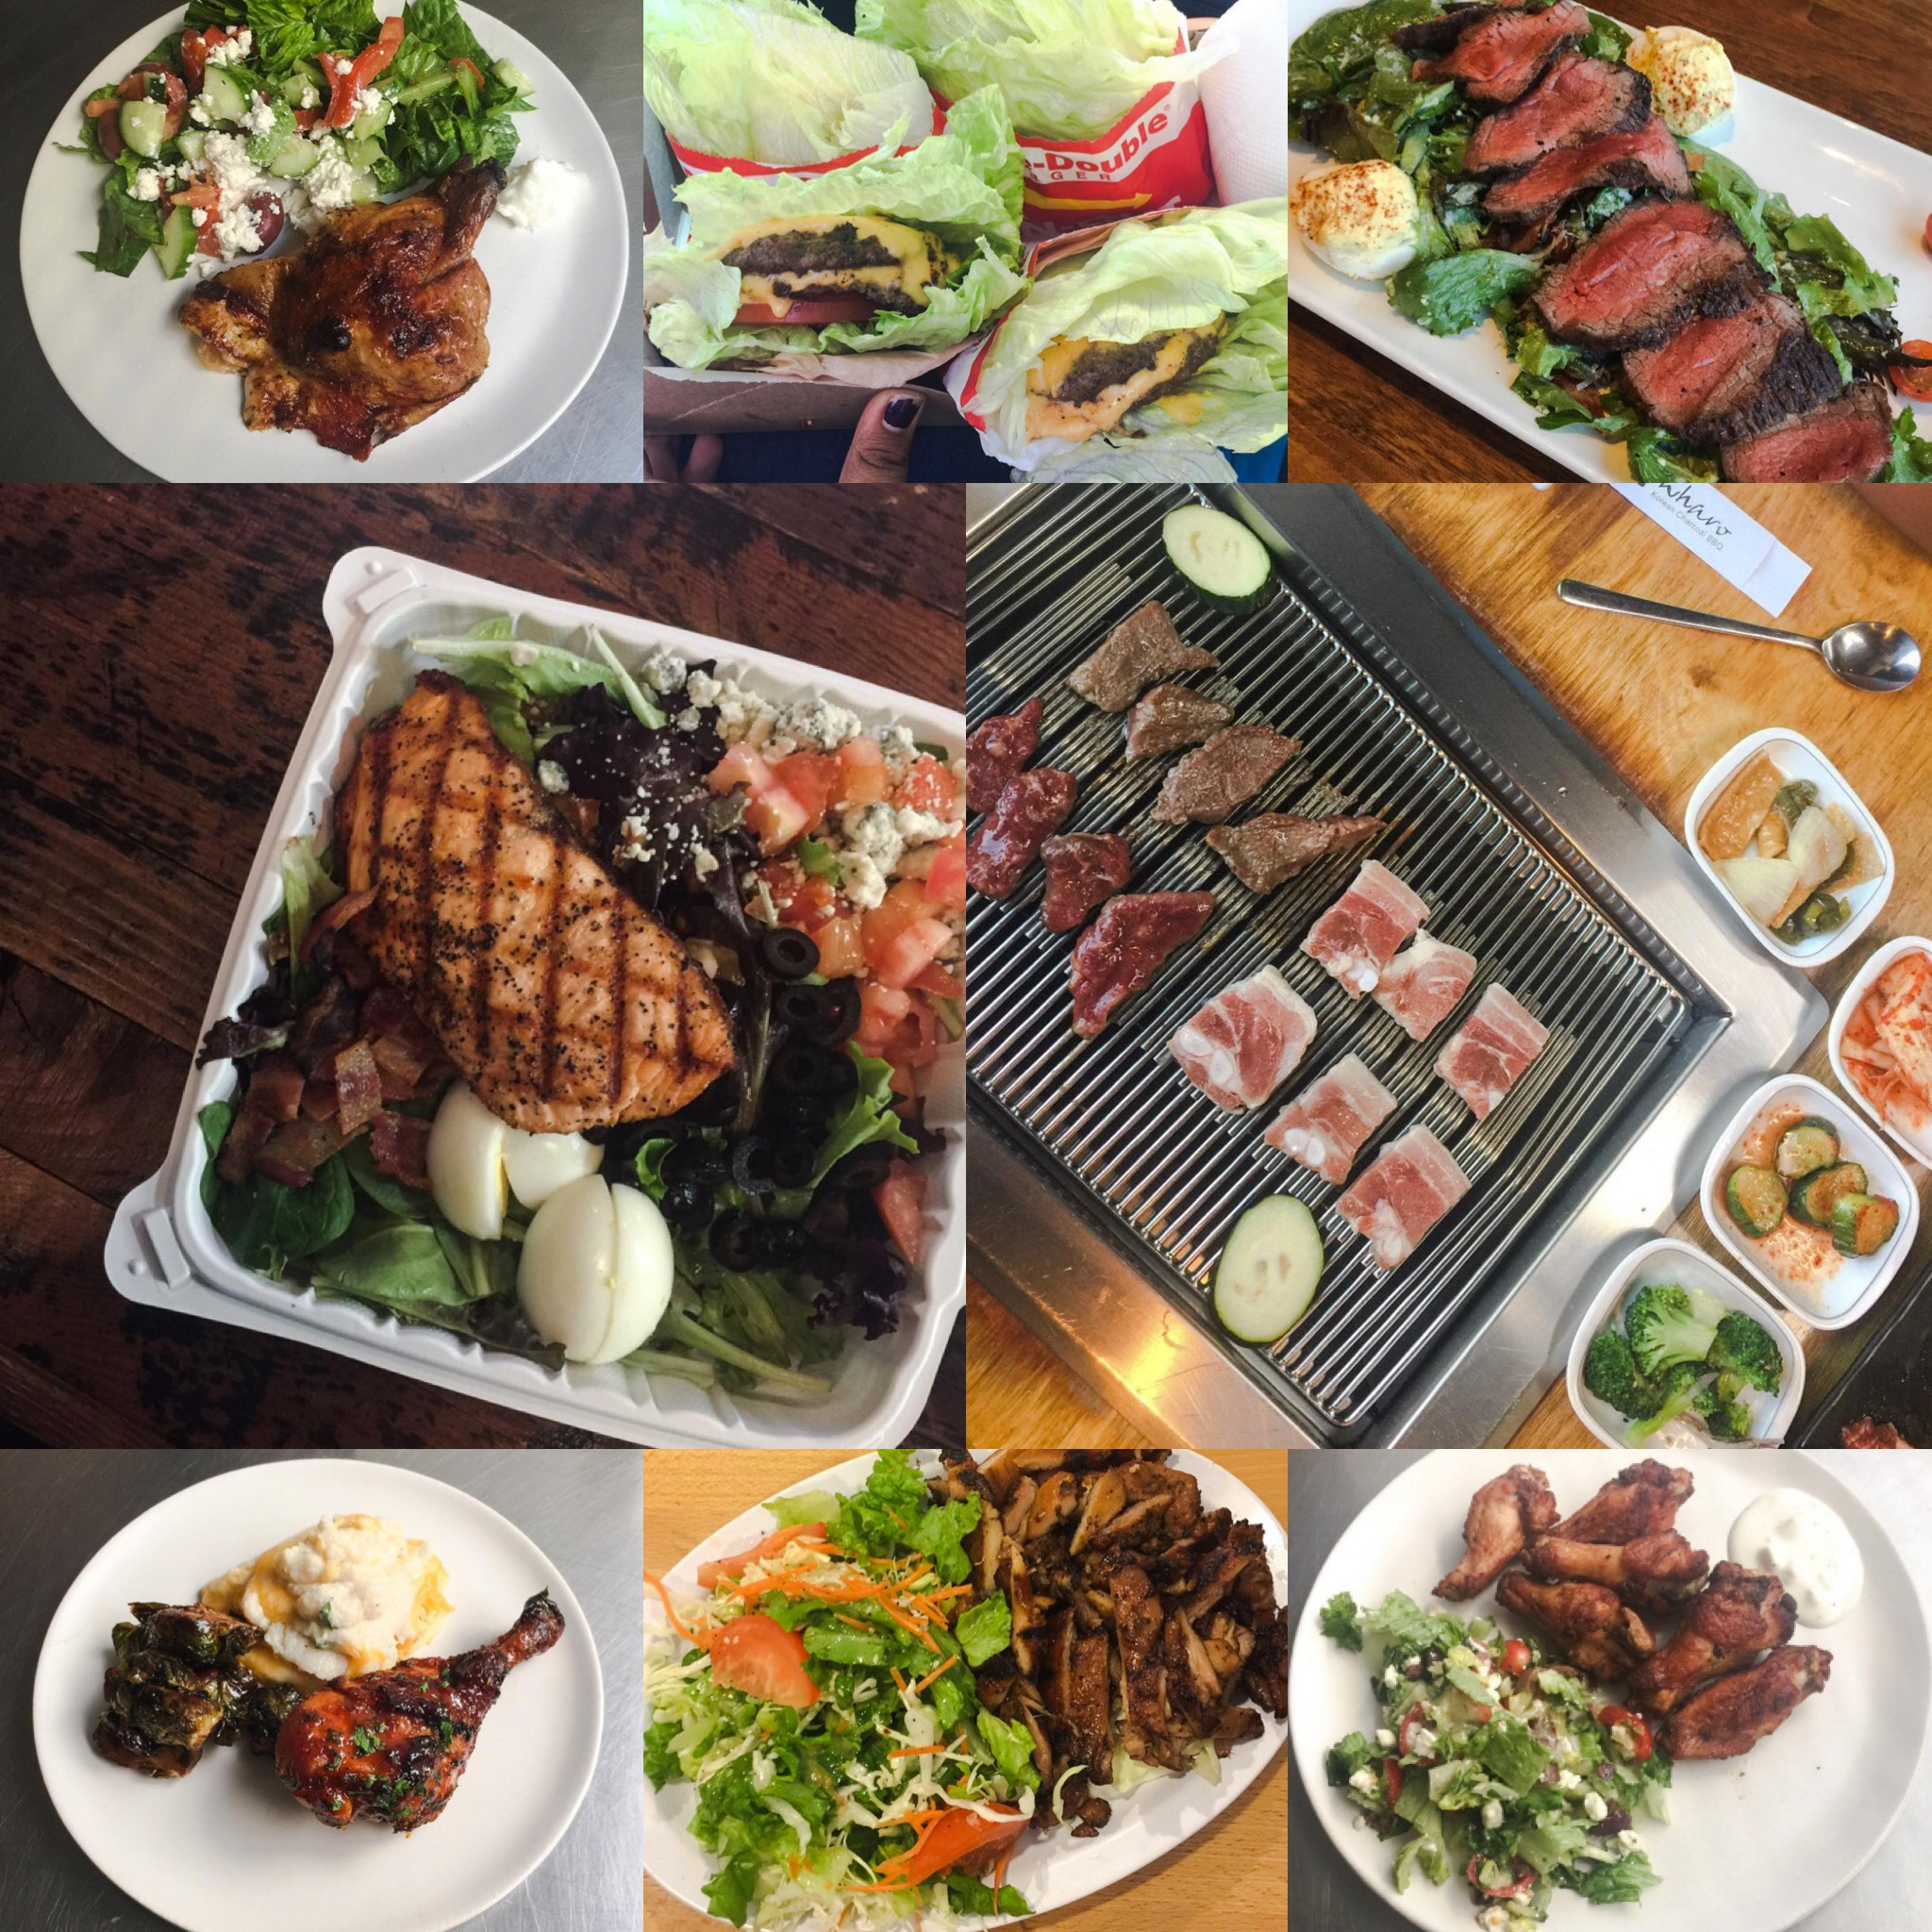 EATING OUT ON KETO: MY TOP 15 by Jen Fisch via Keto In The City